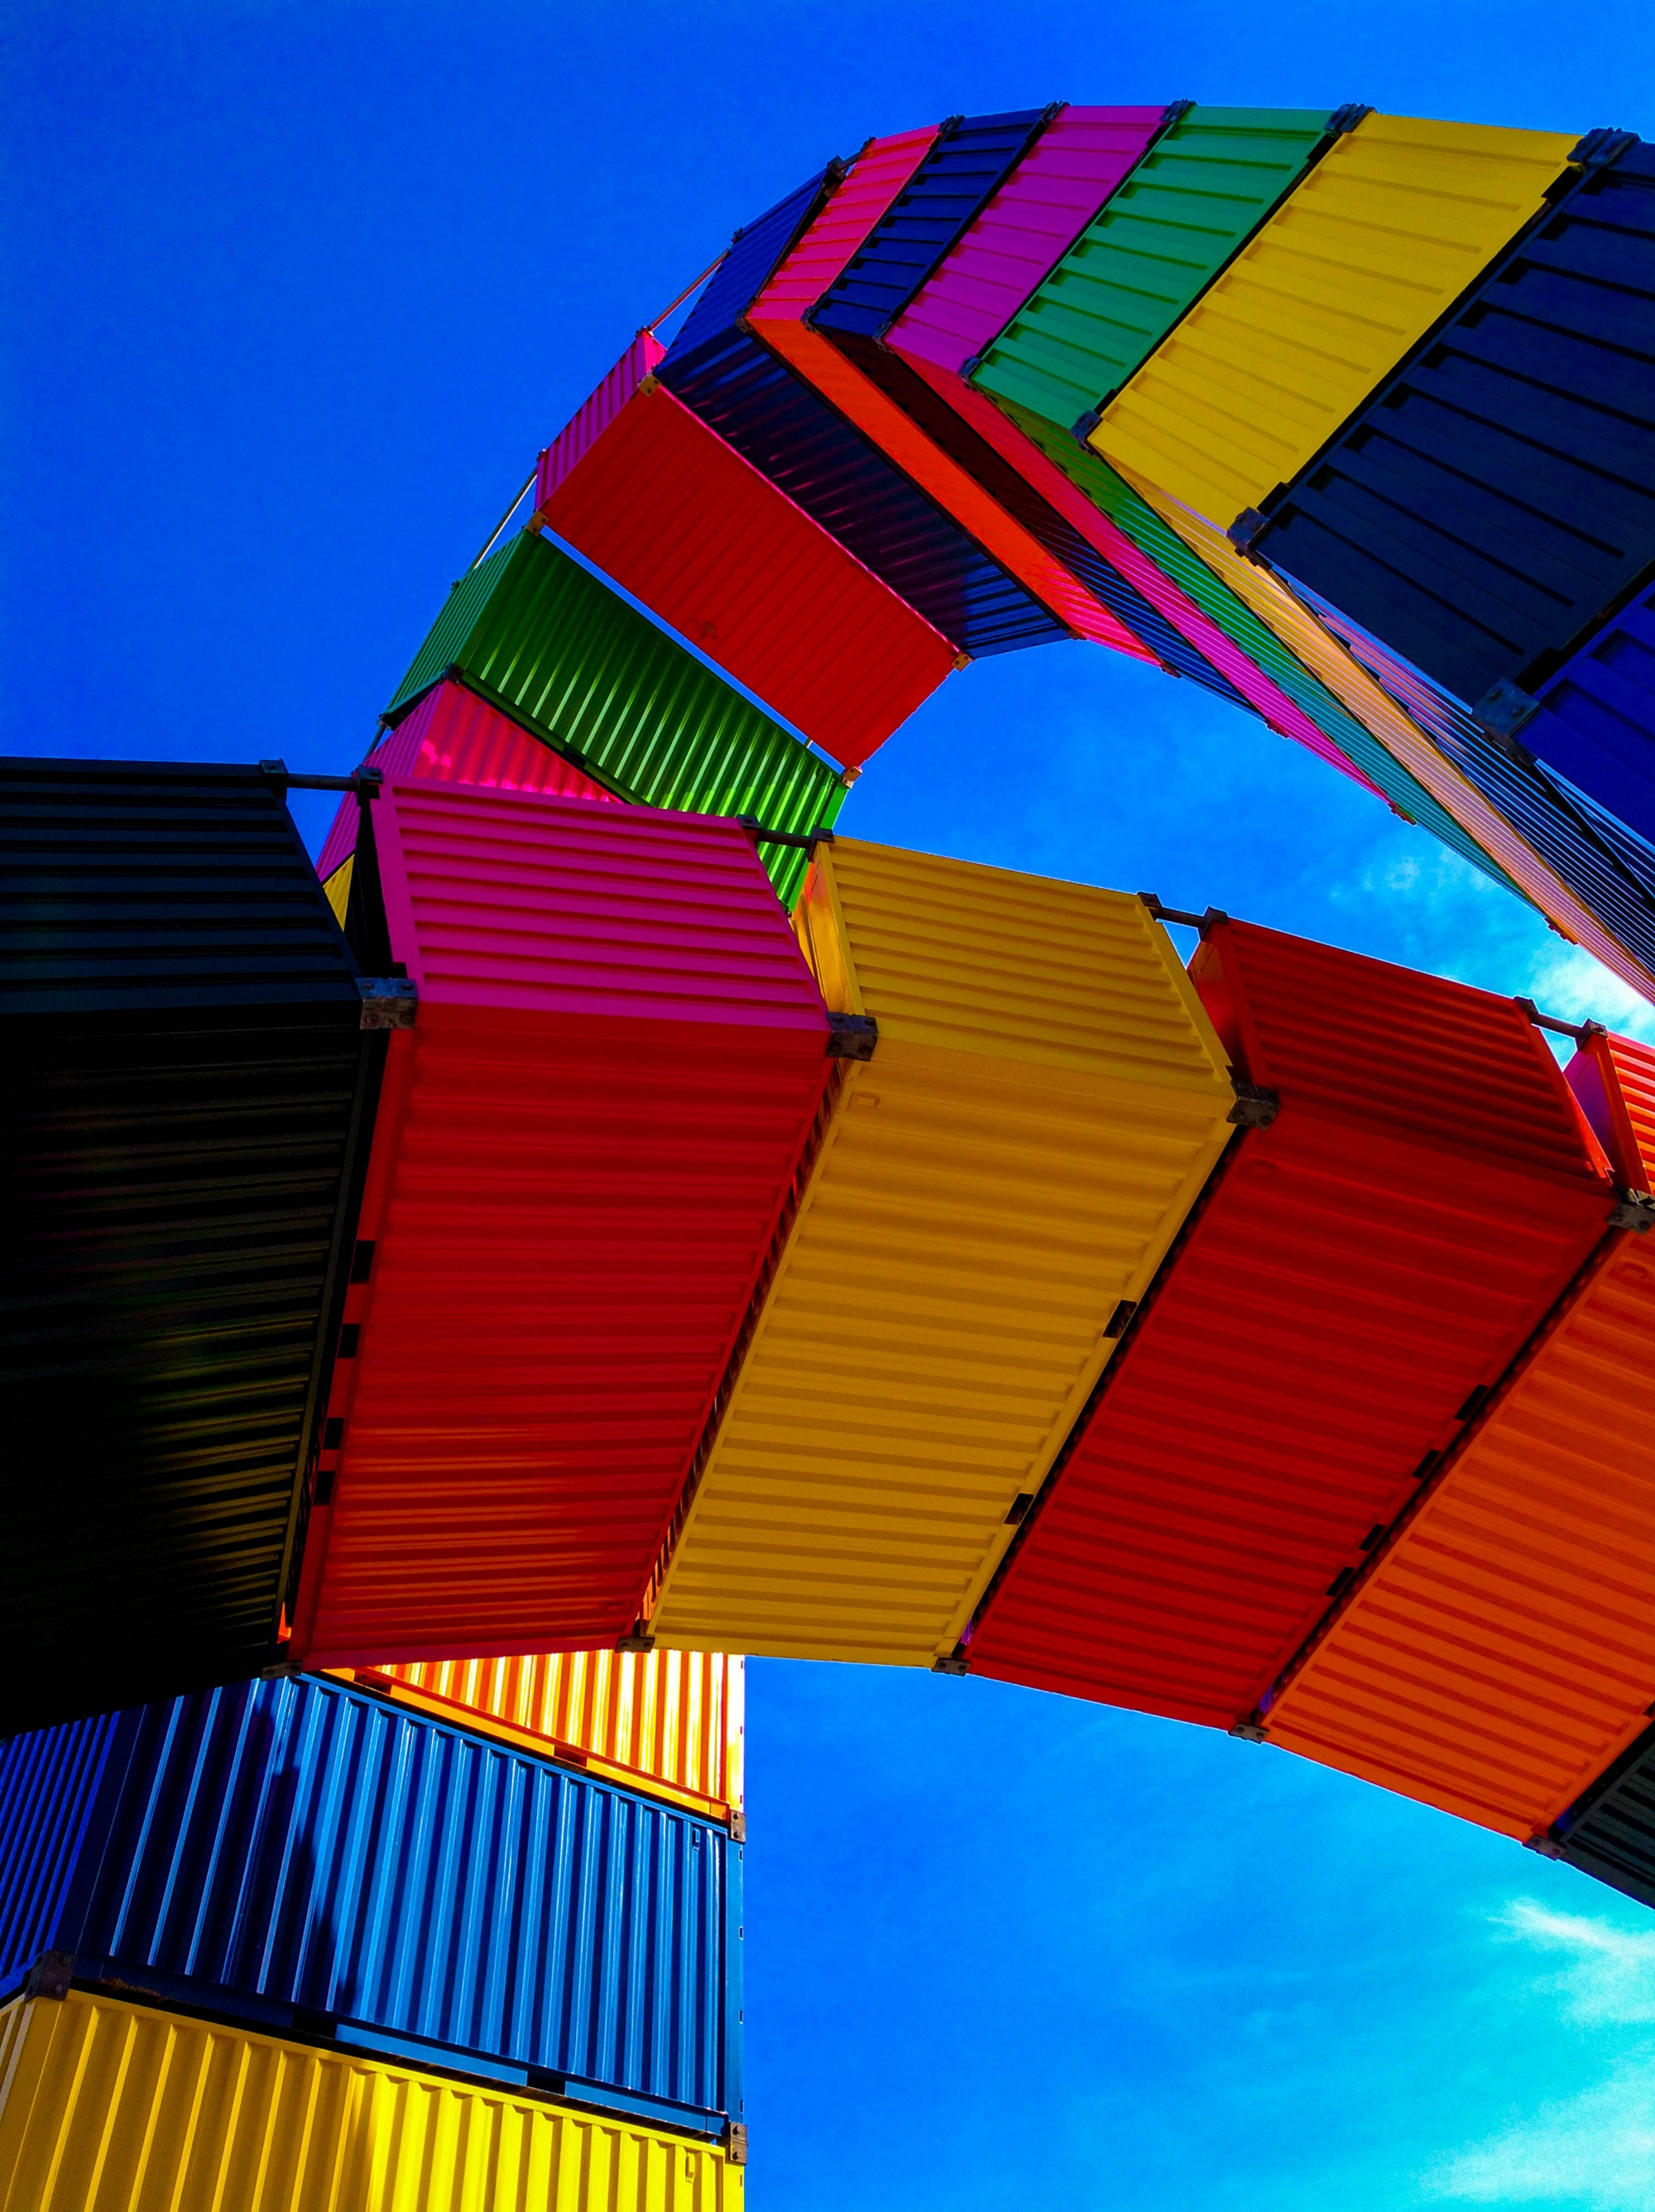 containers over containers